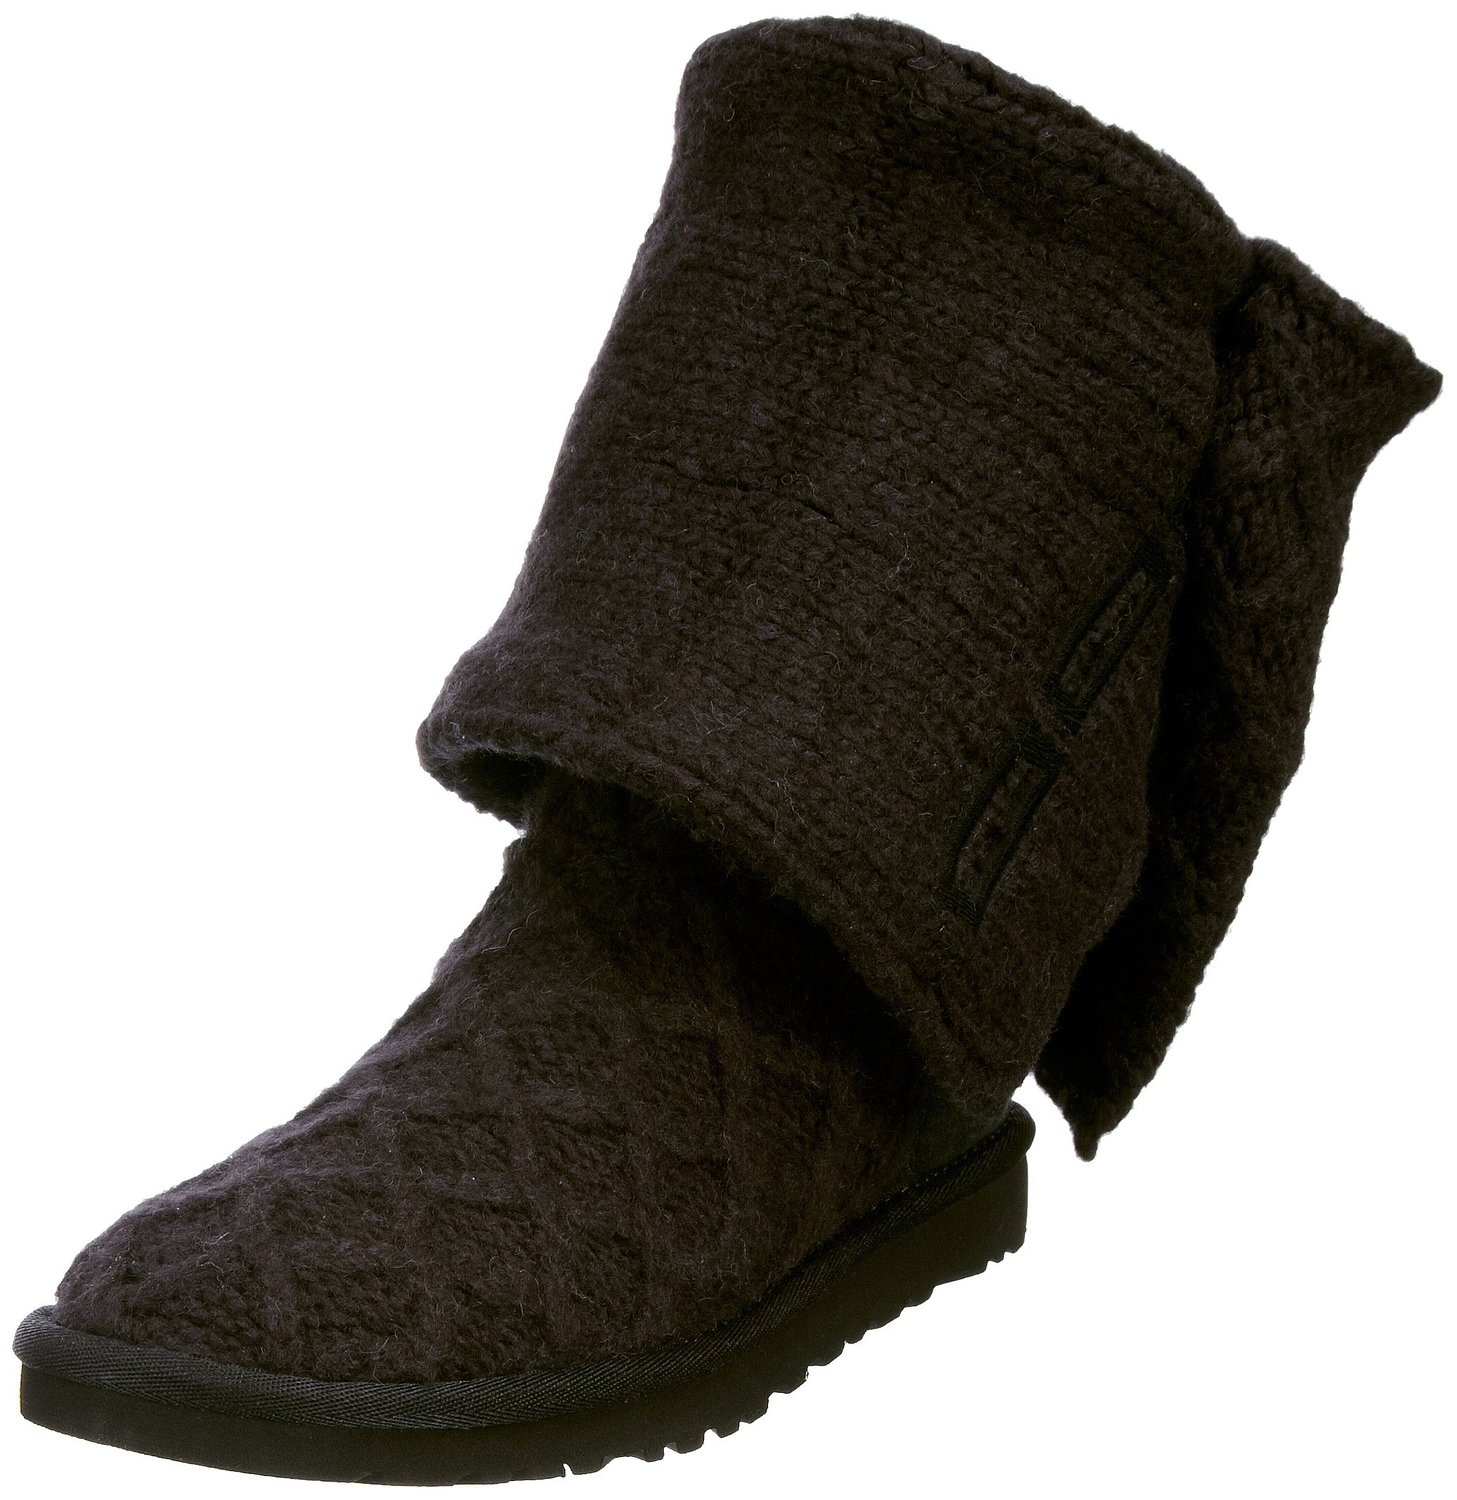 66393e0cff2 Ugg Cardy Boots Size 5 - cheap watches mgc-gas.com